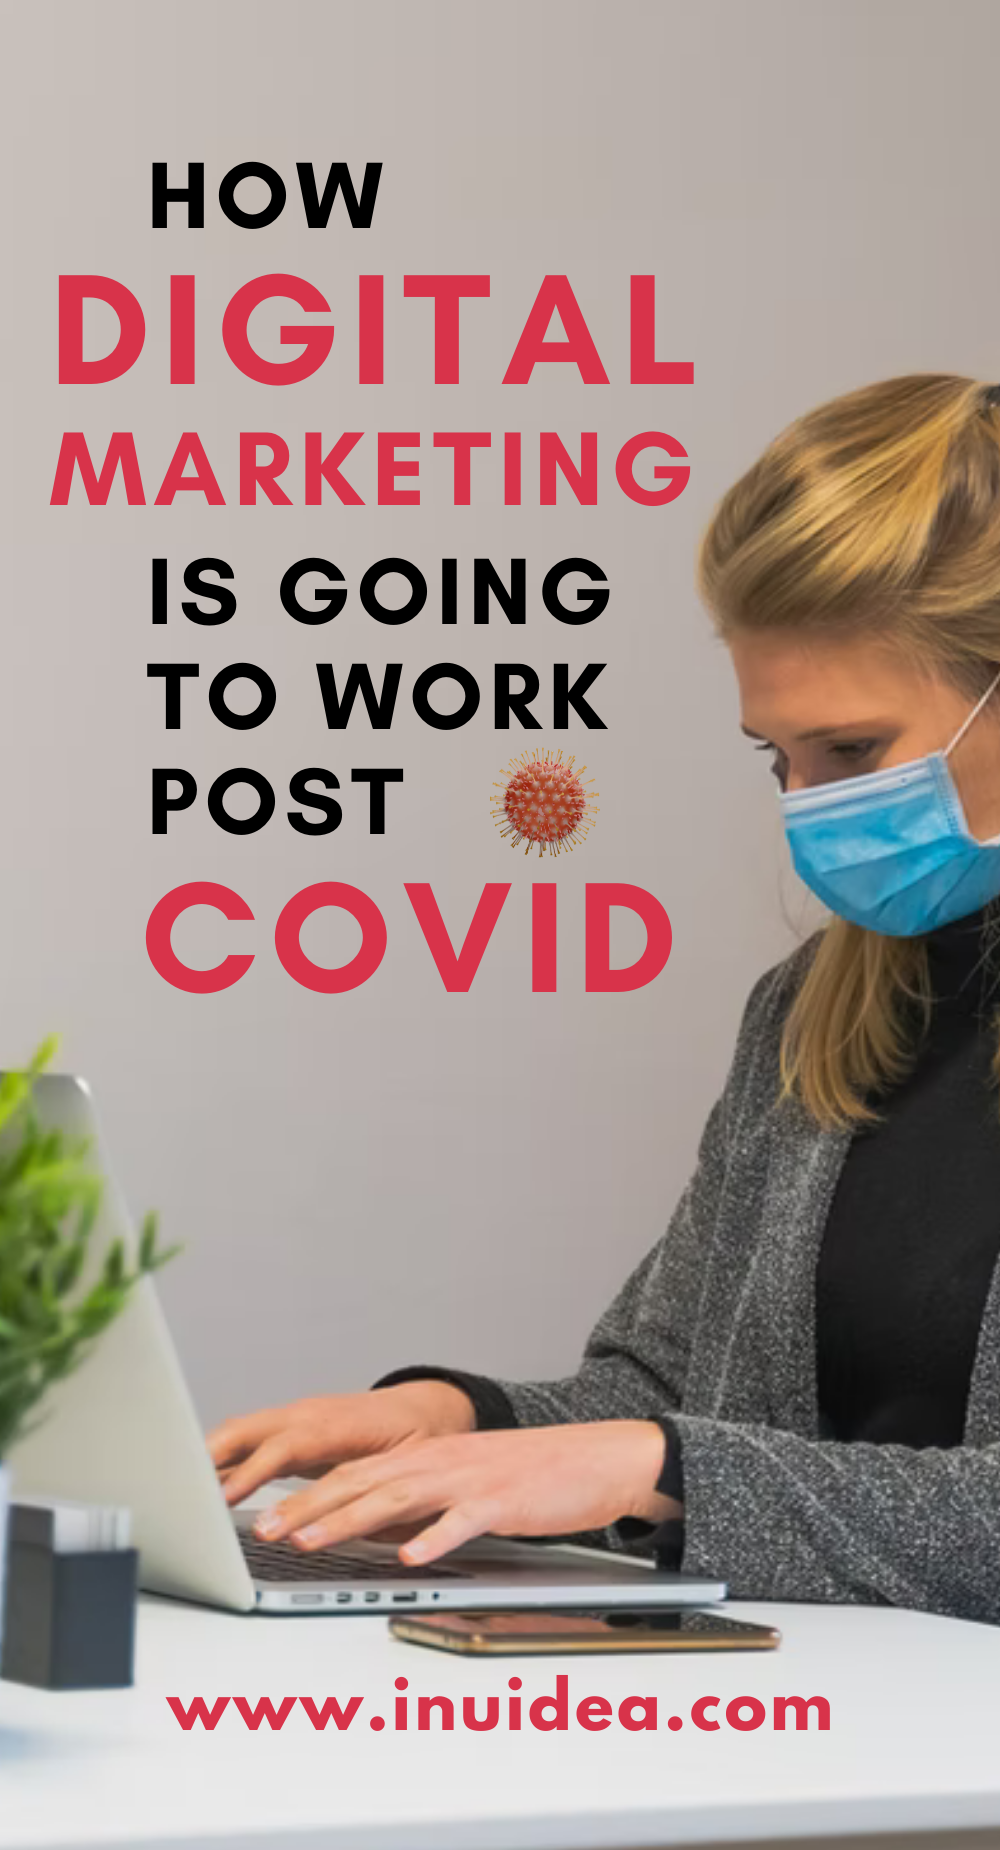 How Digital Marketing Is Going To Work Post Covid